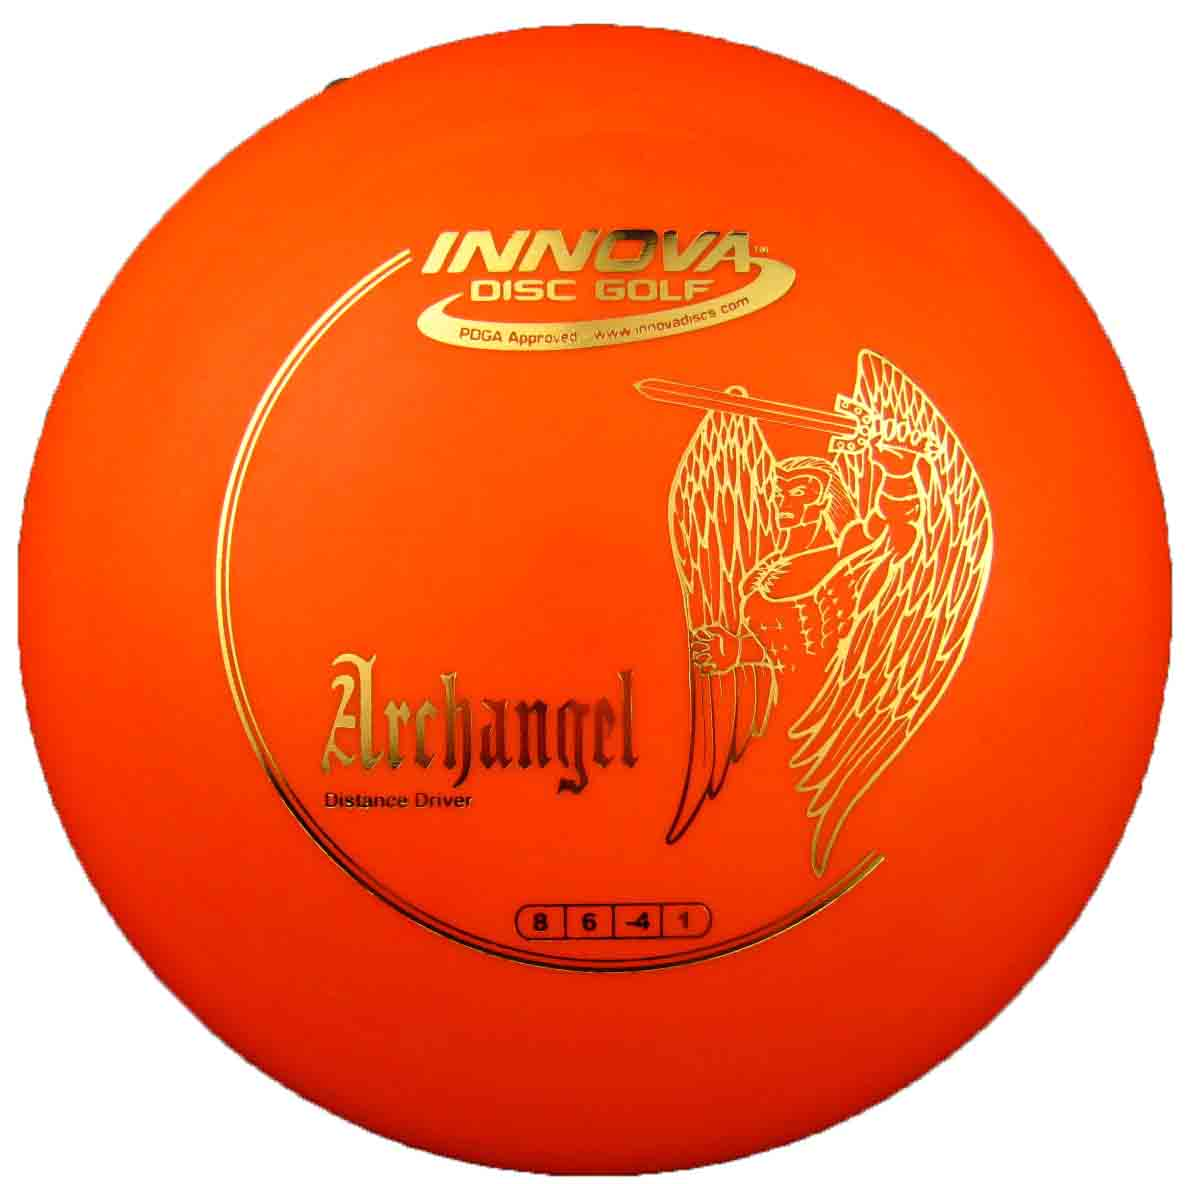 Archangel DX Orange